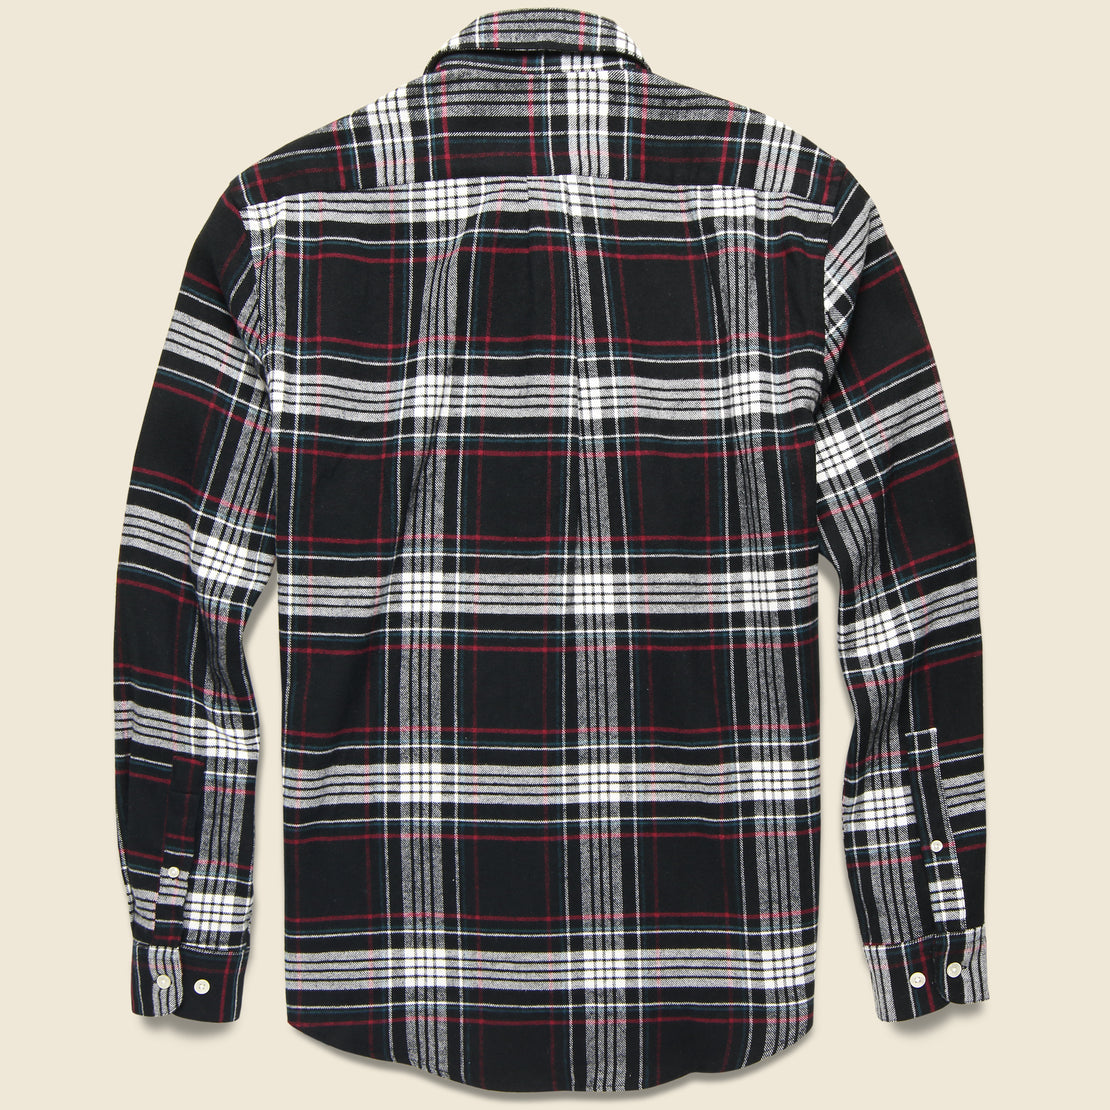 Big Square Nazare Flannel - Black/White